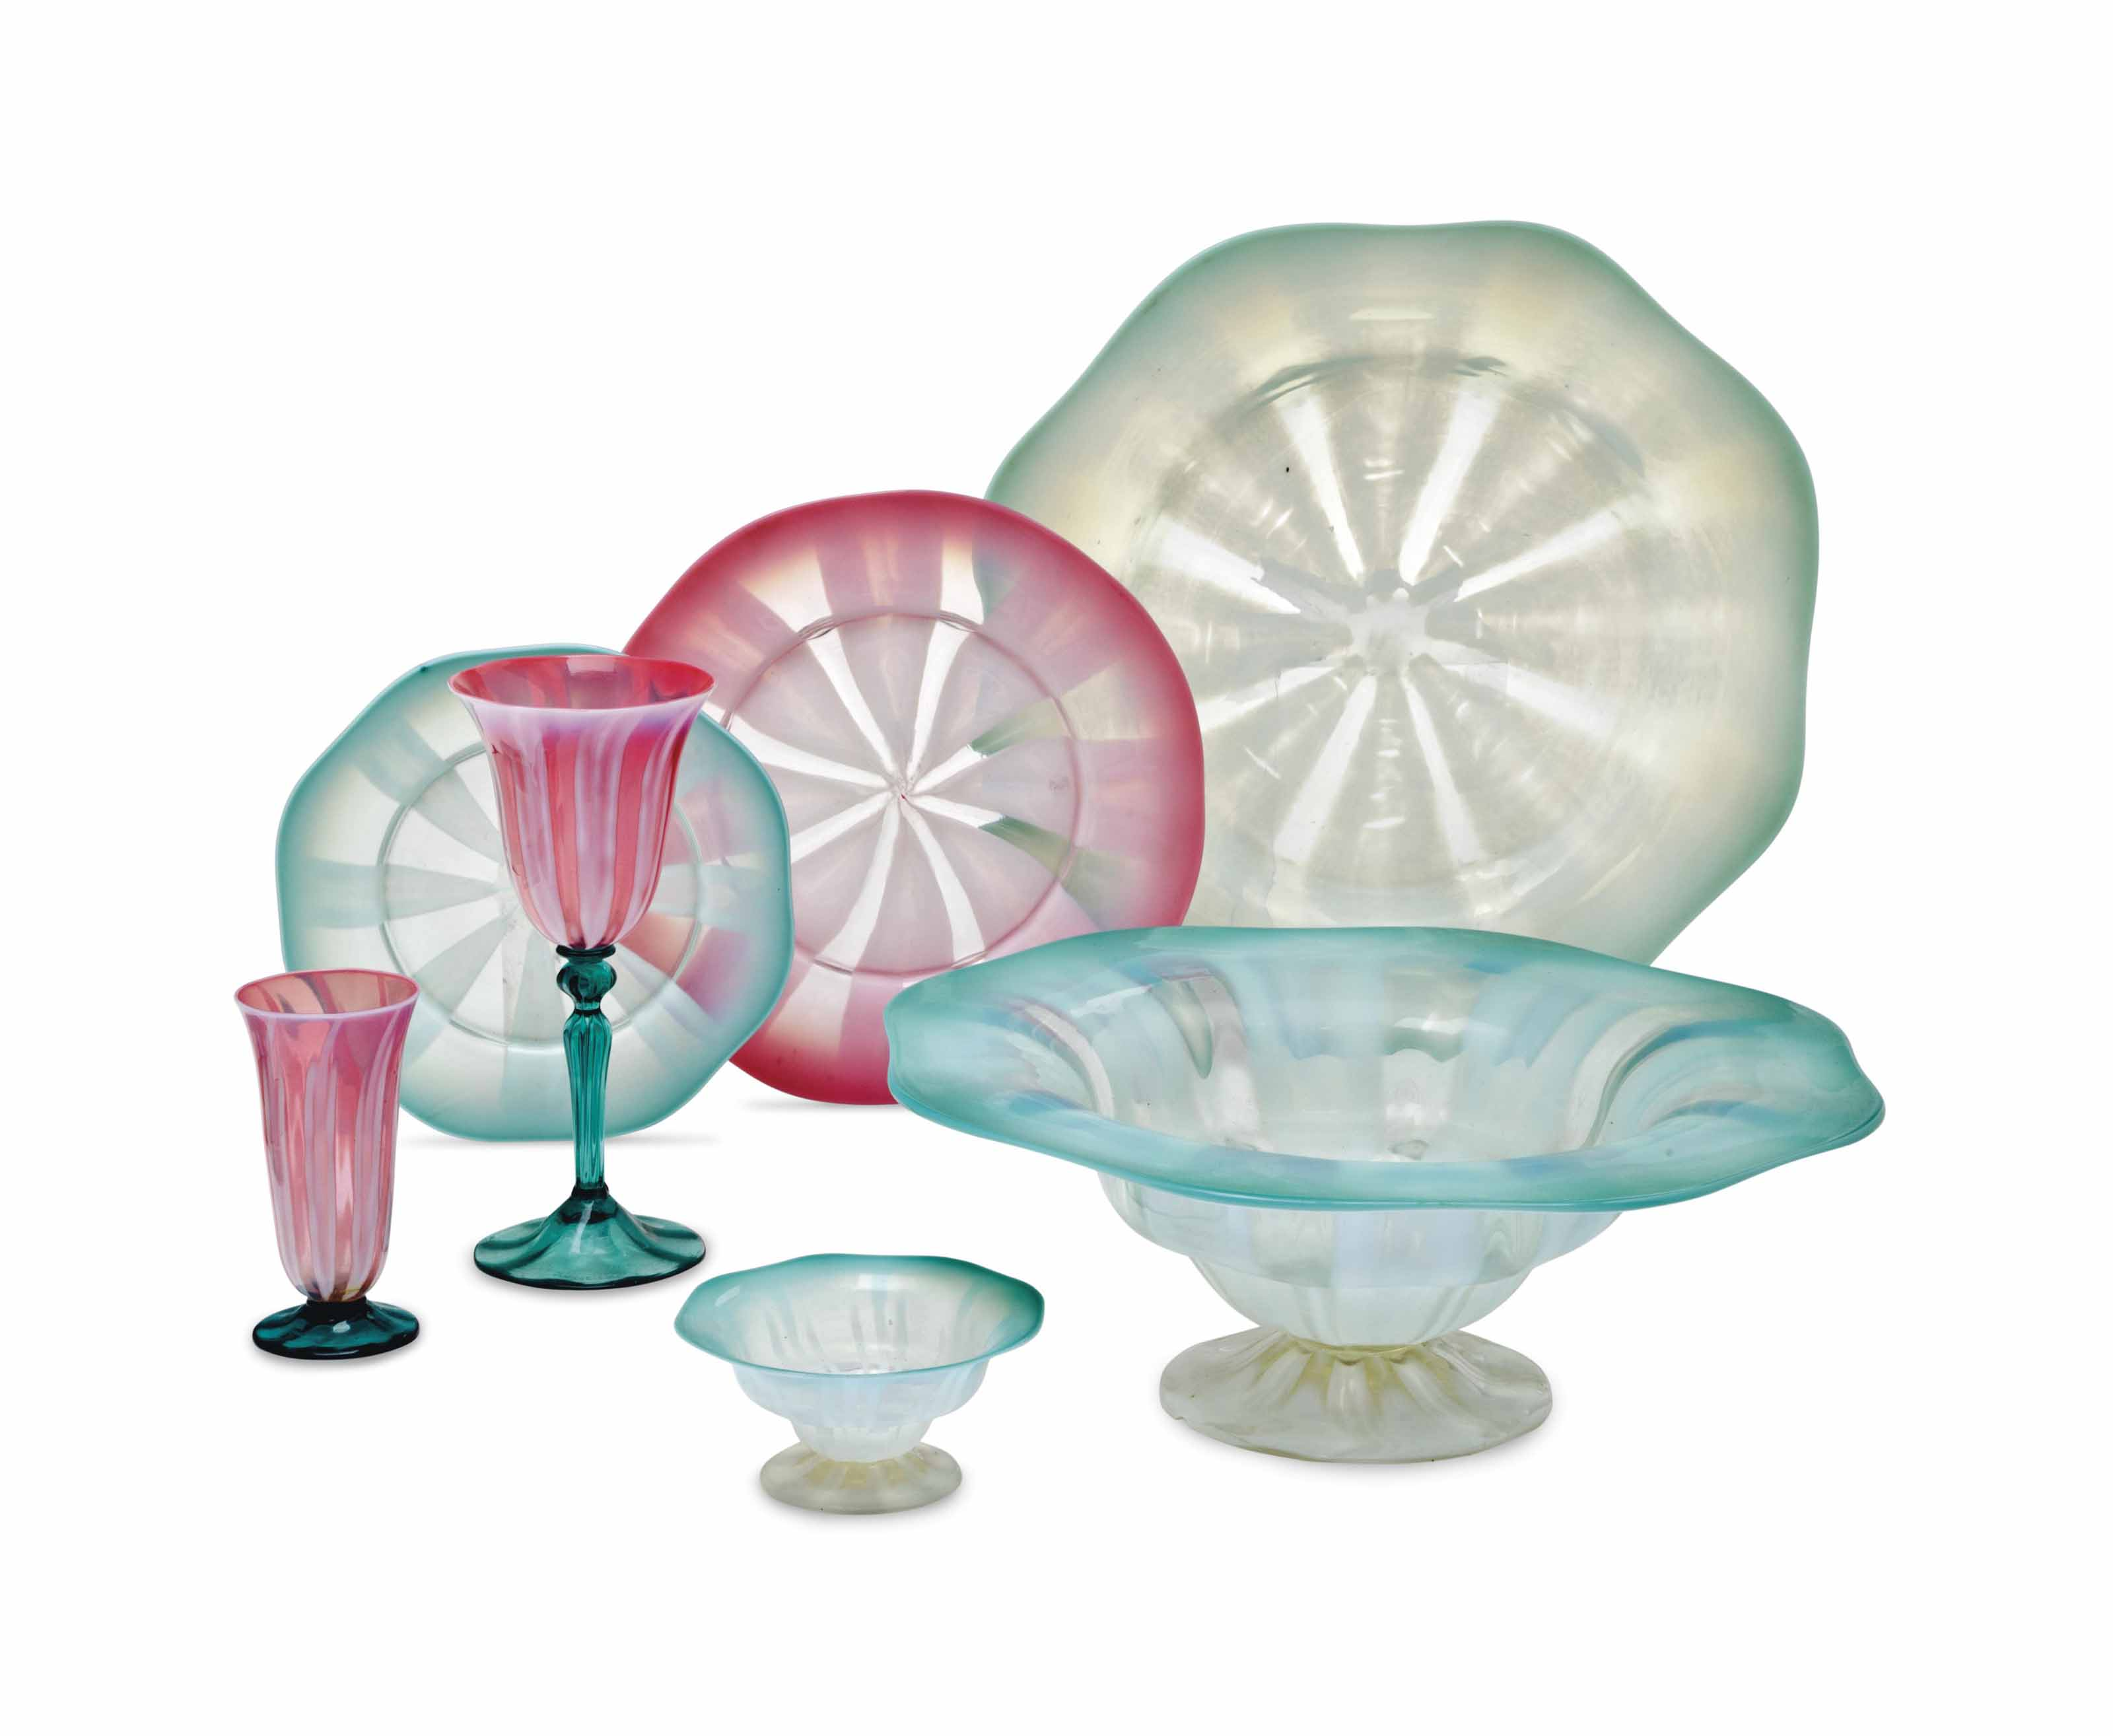 AN ASSEMBLED AMERICAN GREEN PASTEL FAVRILE GLASS DESSERT SERVICE, AND A PINK PASTEL FAVRILE GLASS PART TABLE SERVICE,